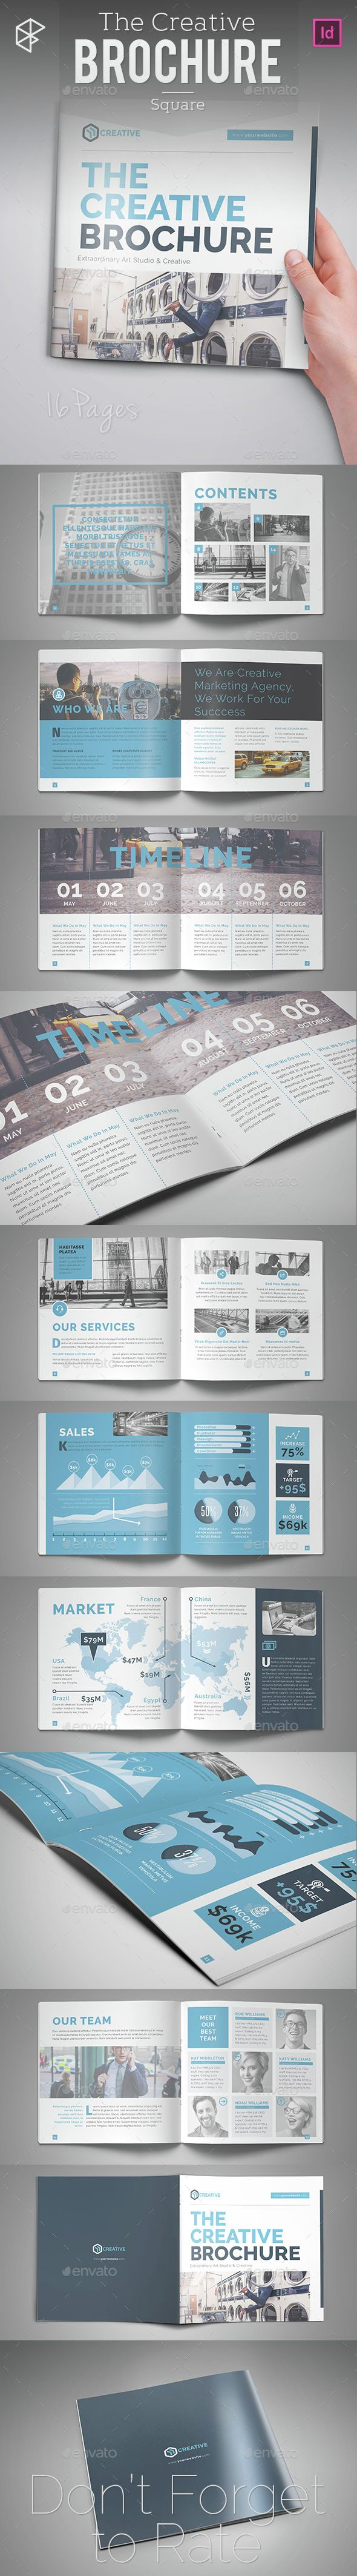 Amazing 100 Greatest Resume Words Big 101 Modern Resume Samples Solid 1st Birthday Invitations Templates 2013 Resume Writing Trends Youthful 2014 Calendar Template Free Soft2014 Monthly Calendar Template 25  Best Ideas About Creative Brochure On Pinterest | Pamphlet ..